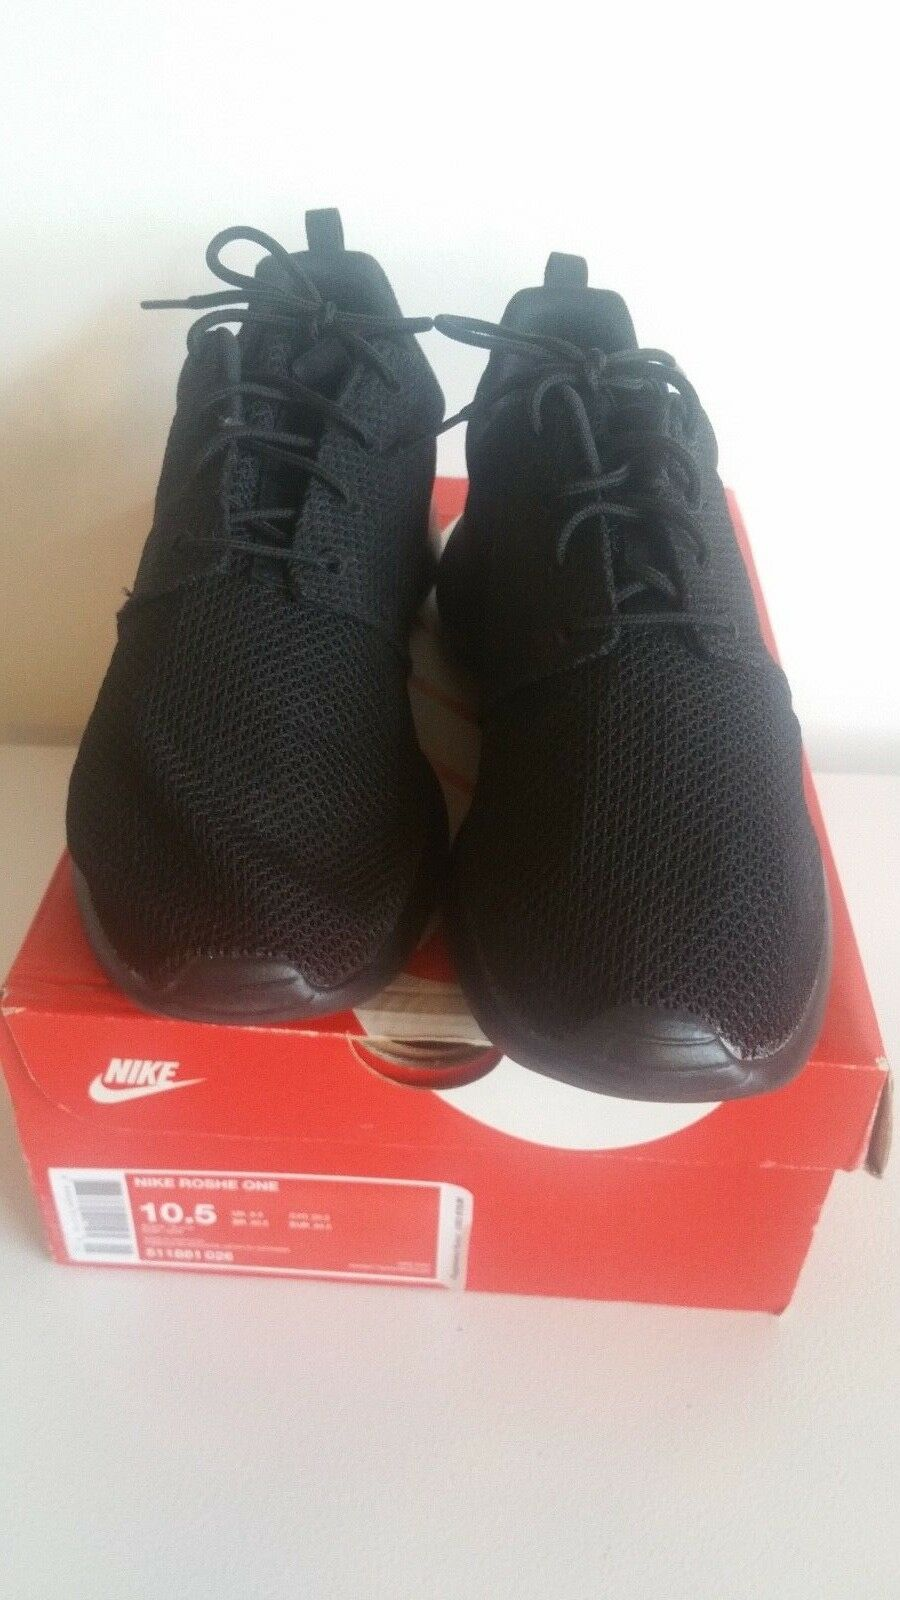 07f310ec8055f Nike Nike Nike Men s10.5 Roche One Running shoes Black Black 511881 ...